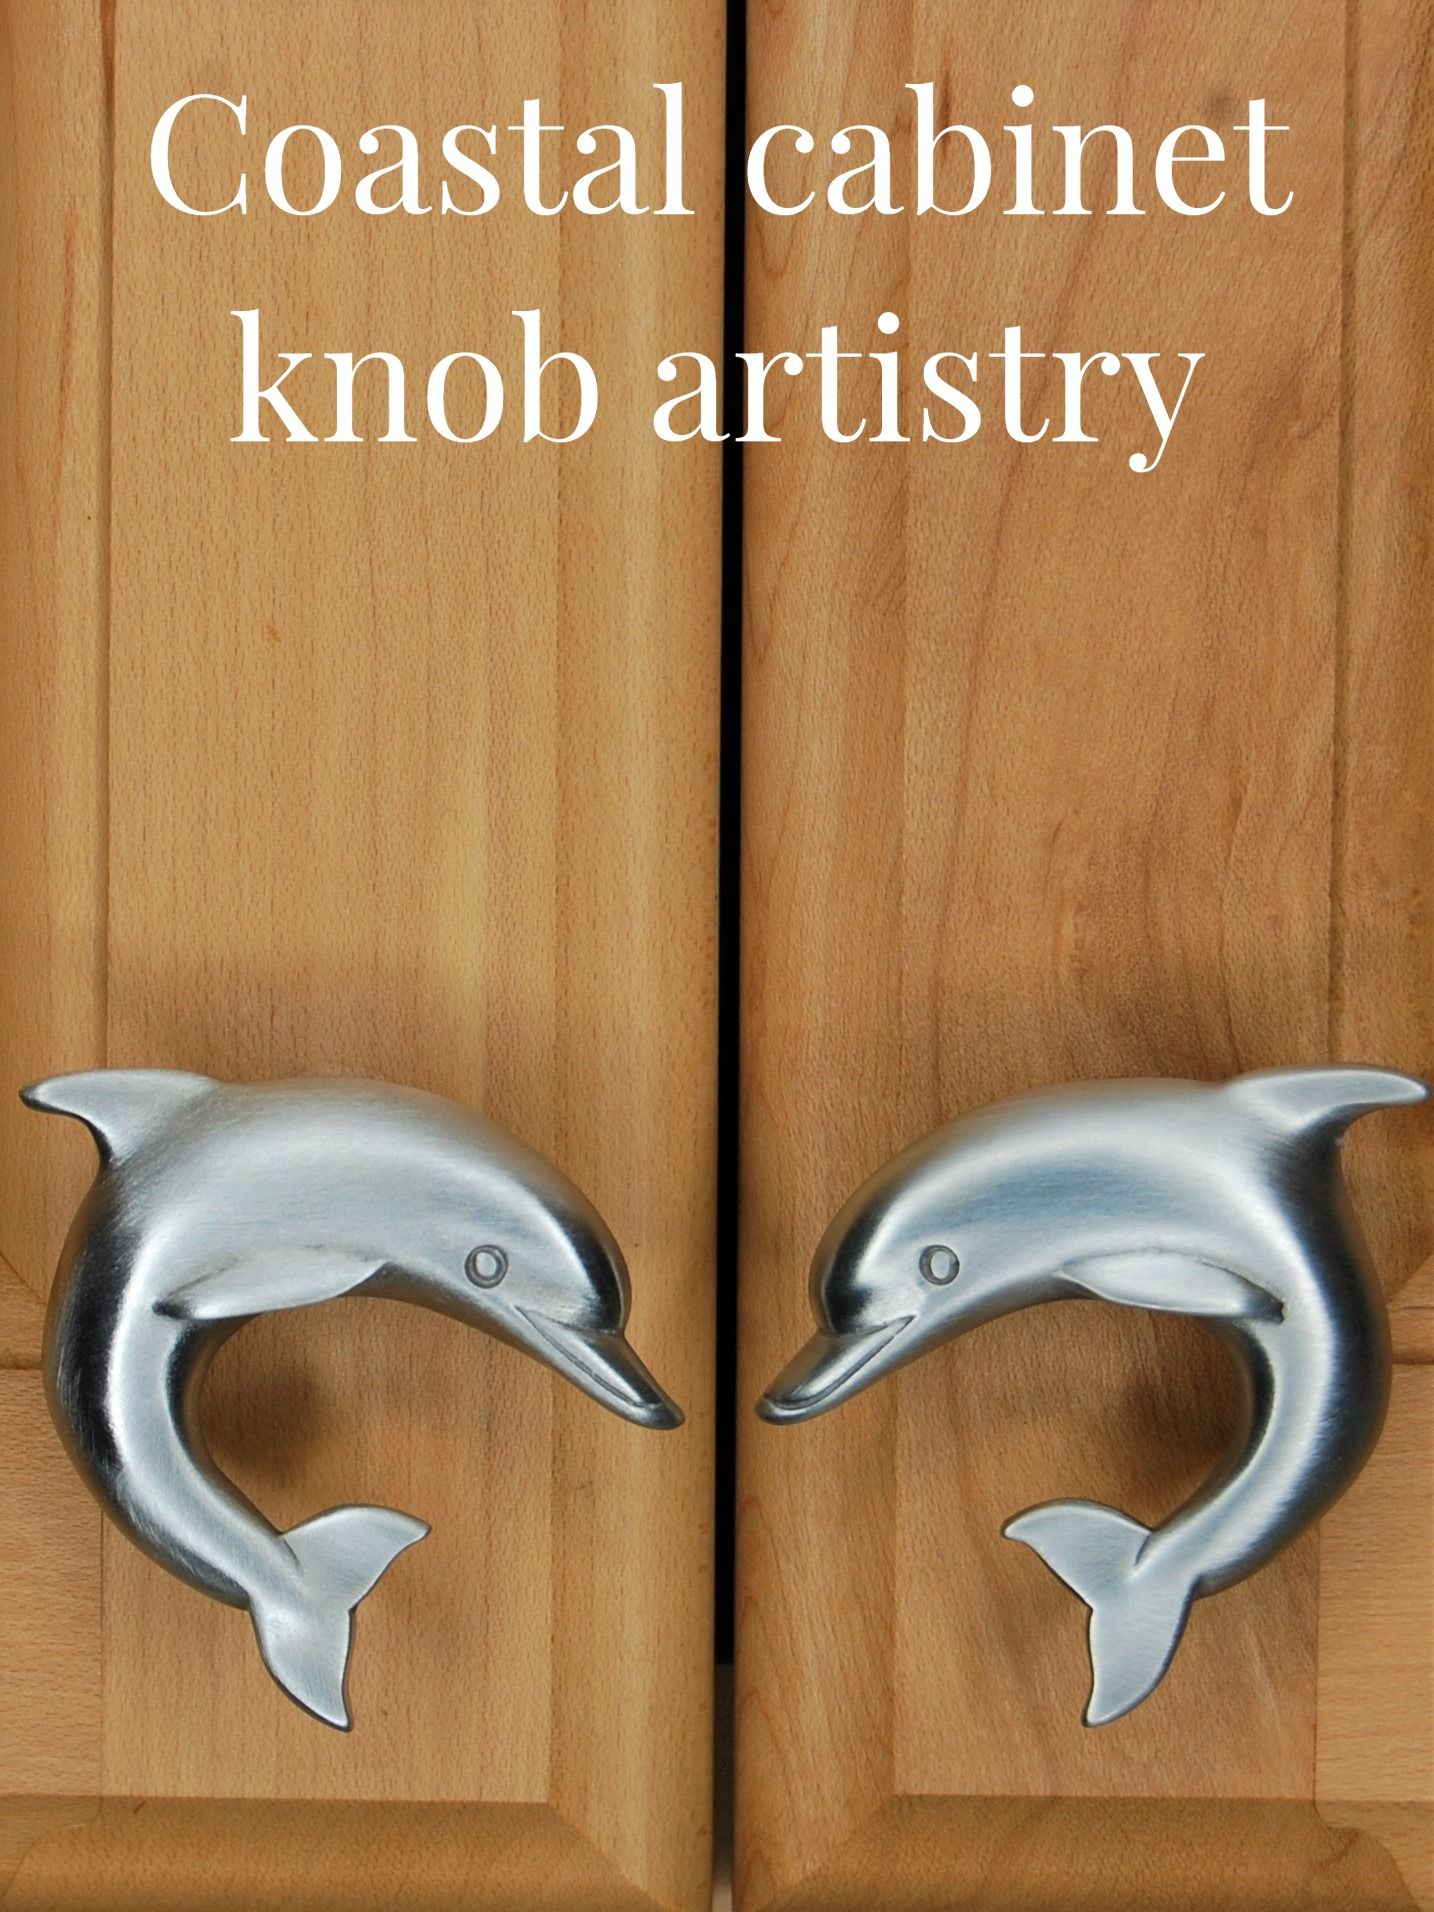 Pin On Coastal Cabinet Knobs And Pulls